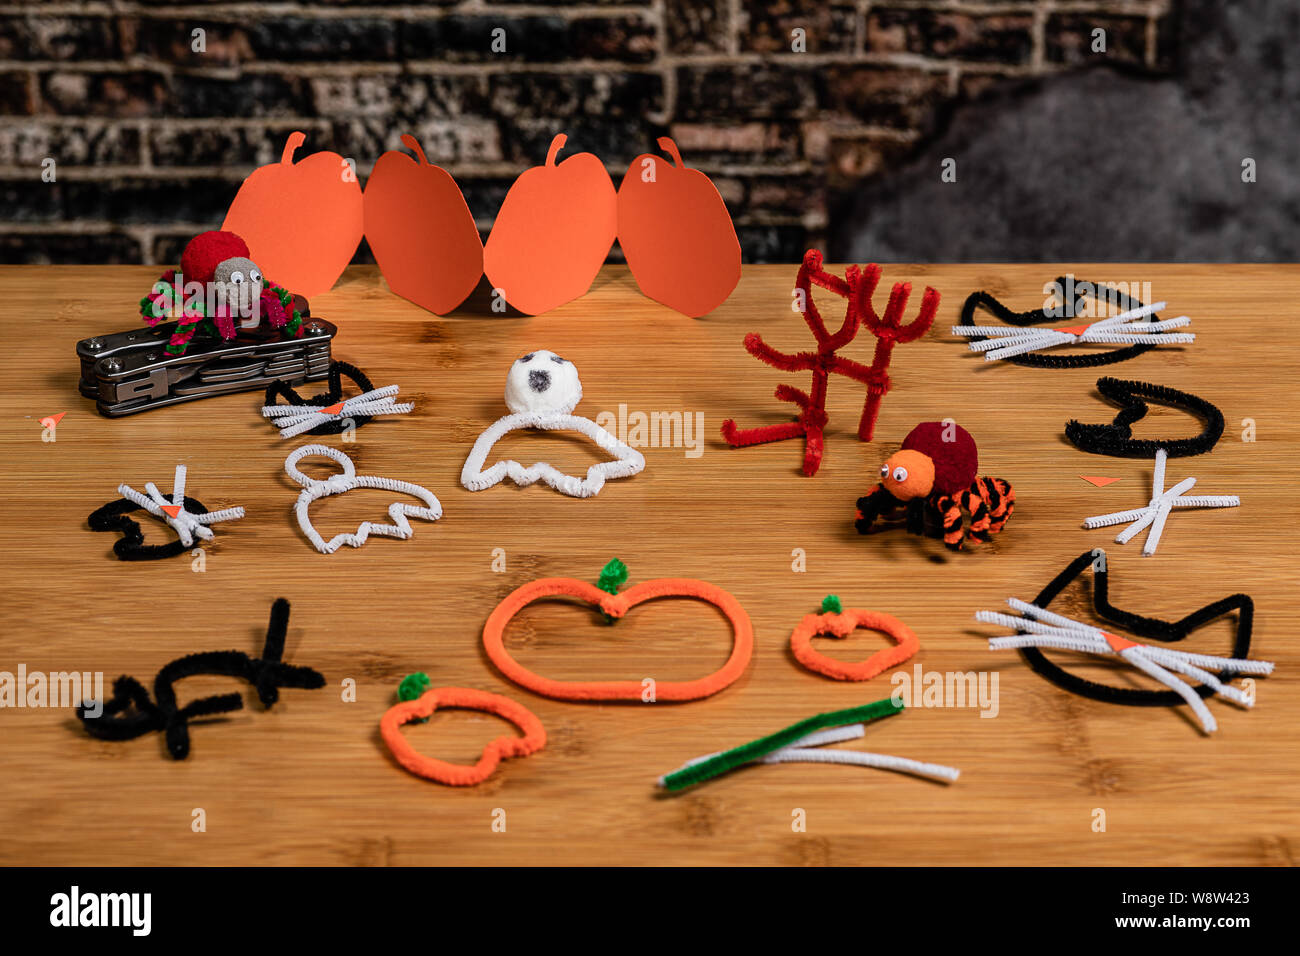 Halloween Pipe Cleaner And Construction Paper Crafts